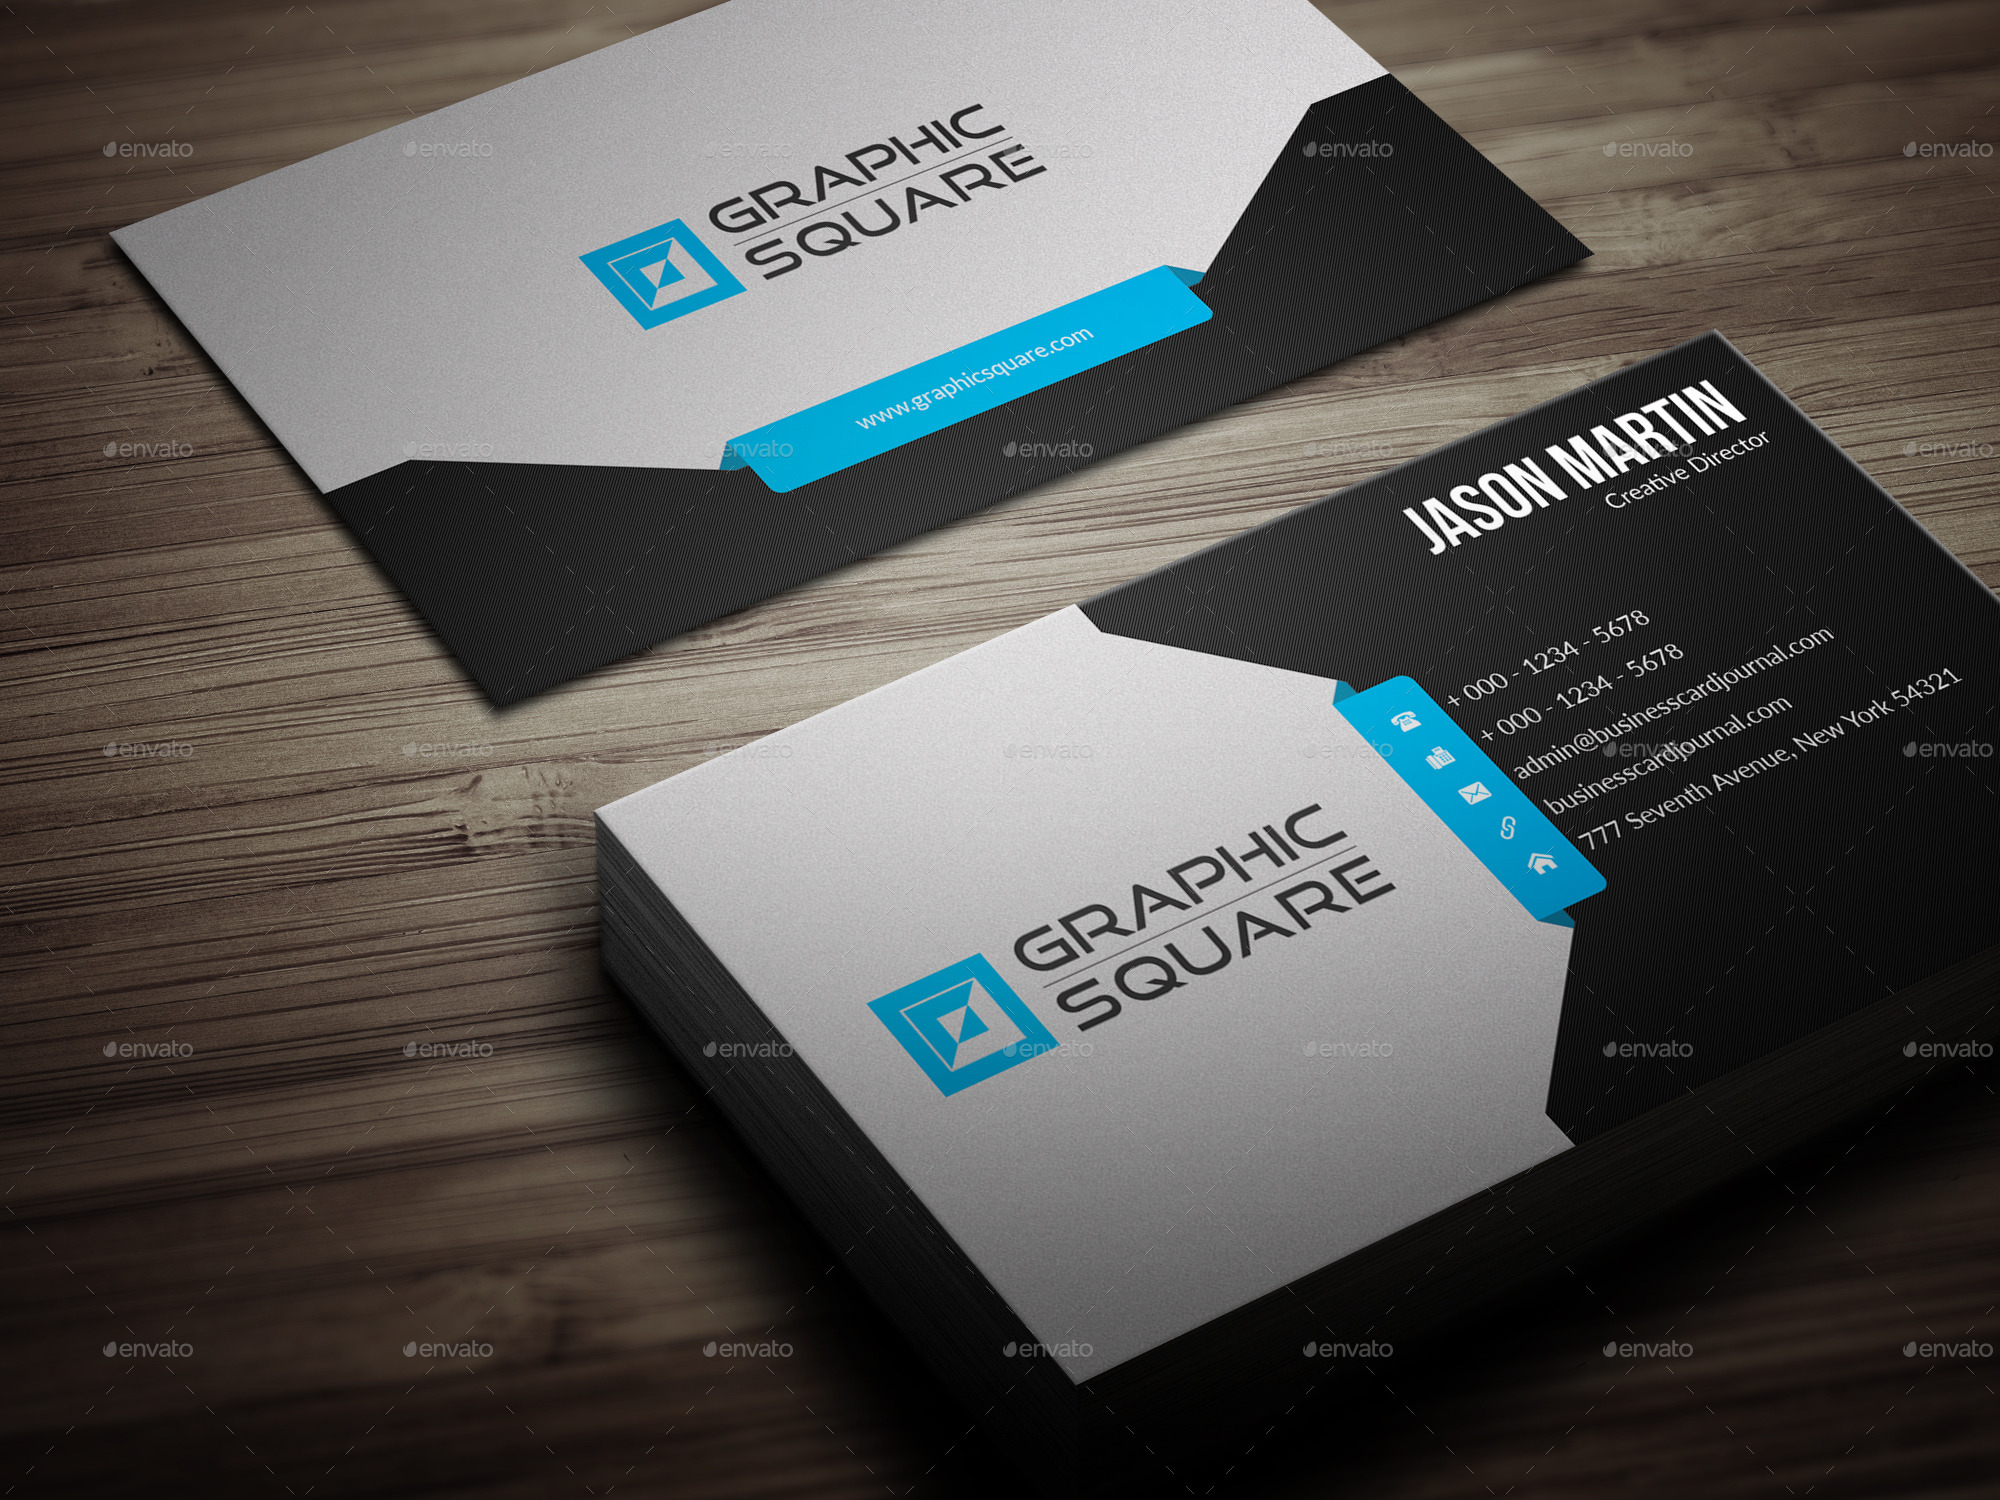 Exelent It Business Cards Ensign Business Card Ideas Etadam Info